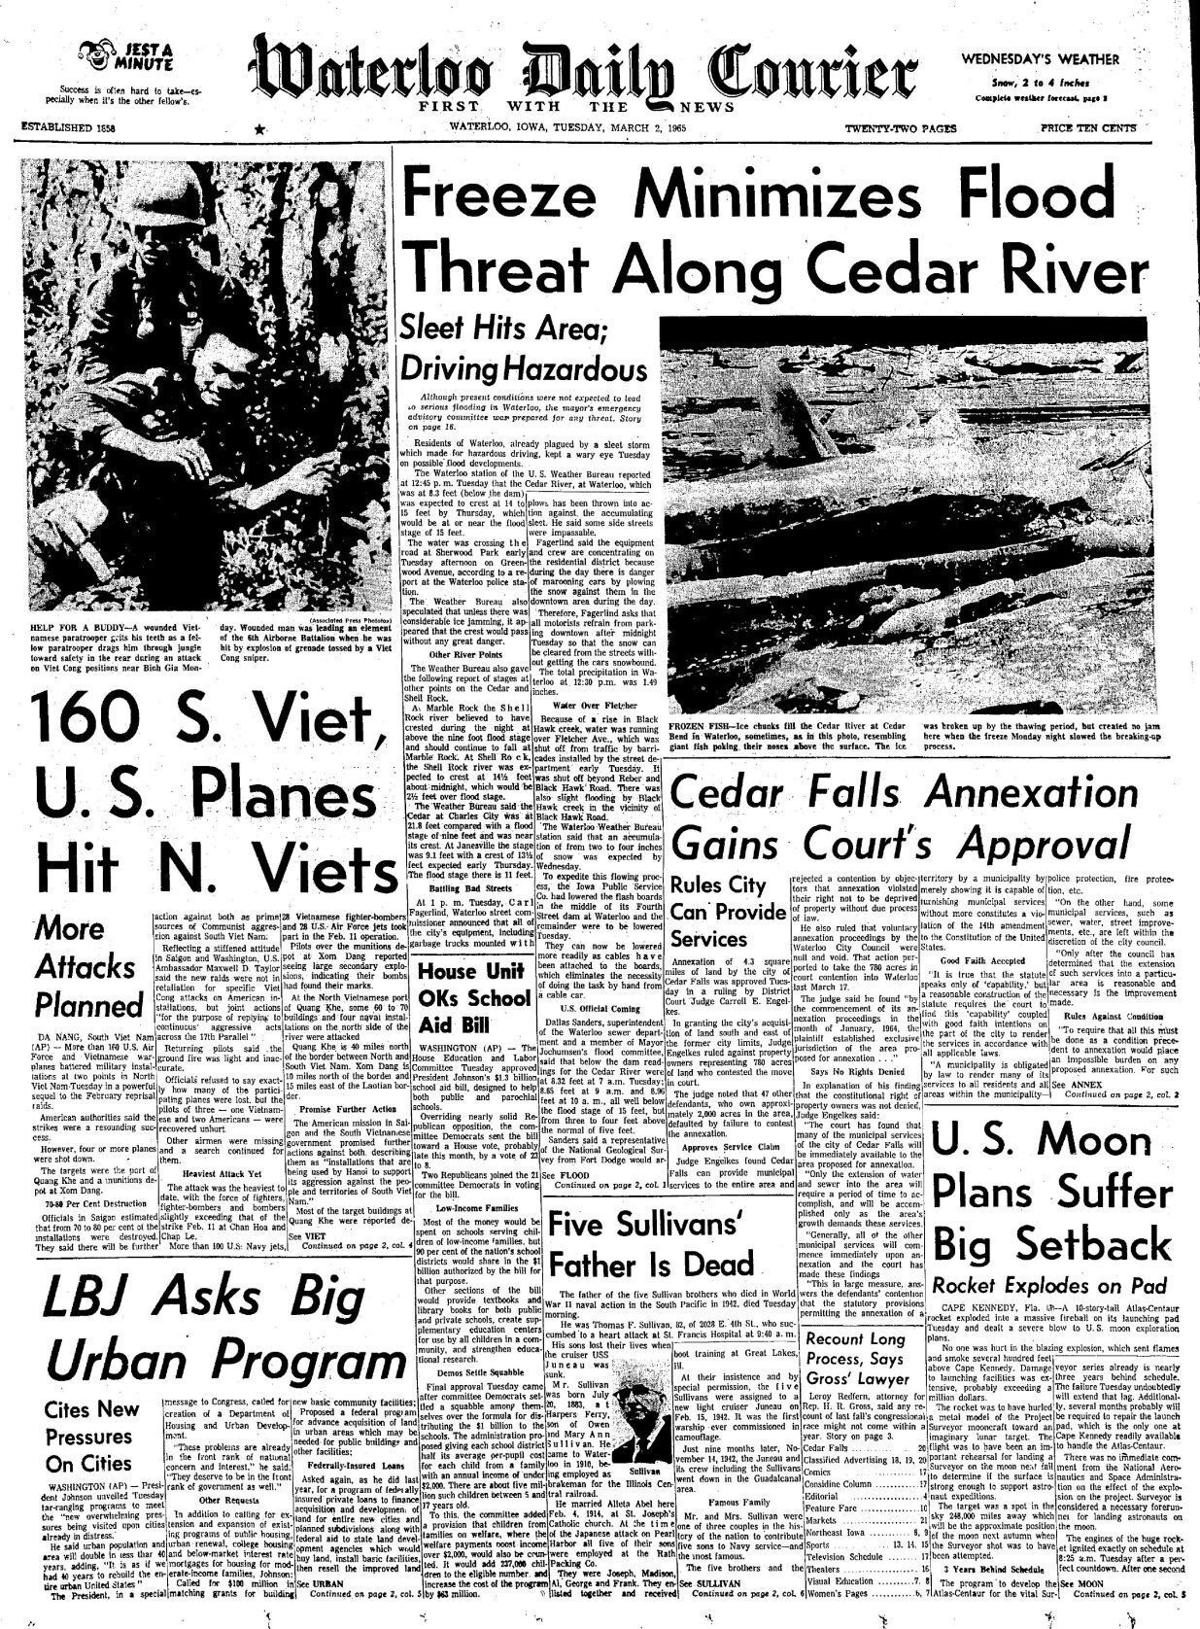 Courier March 2, 1965